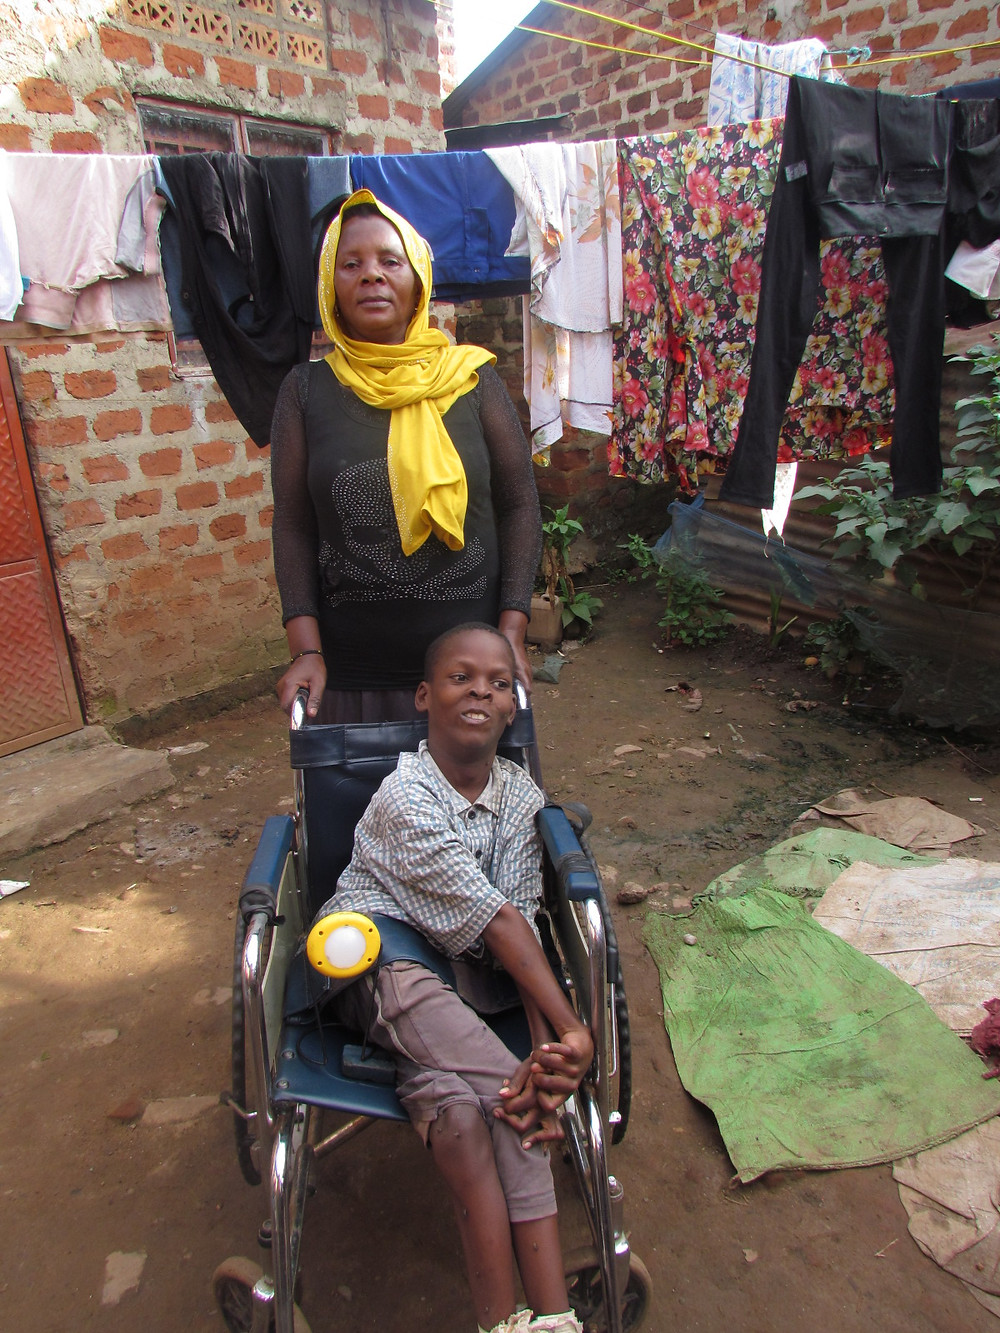 Abdul and his mother Tahia outside their home